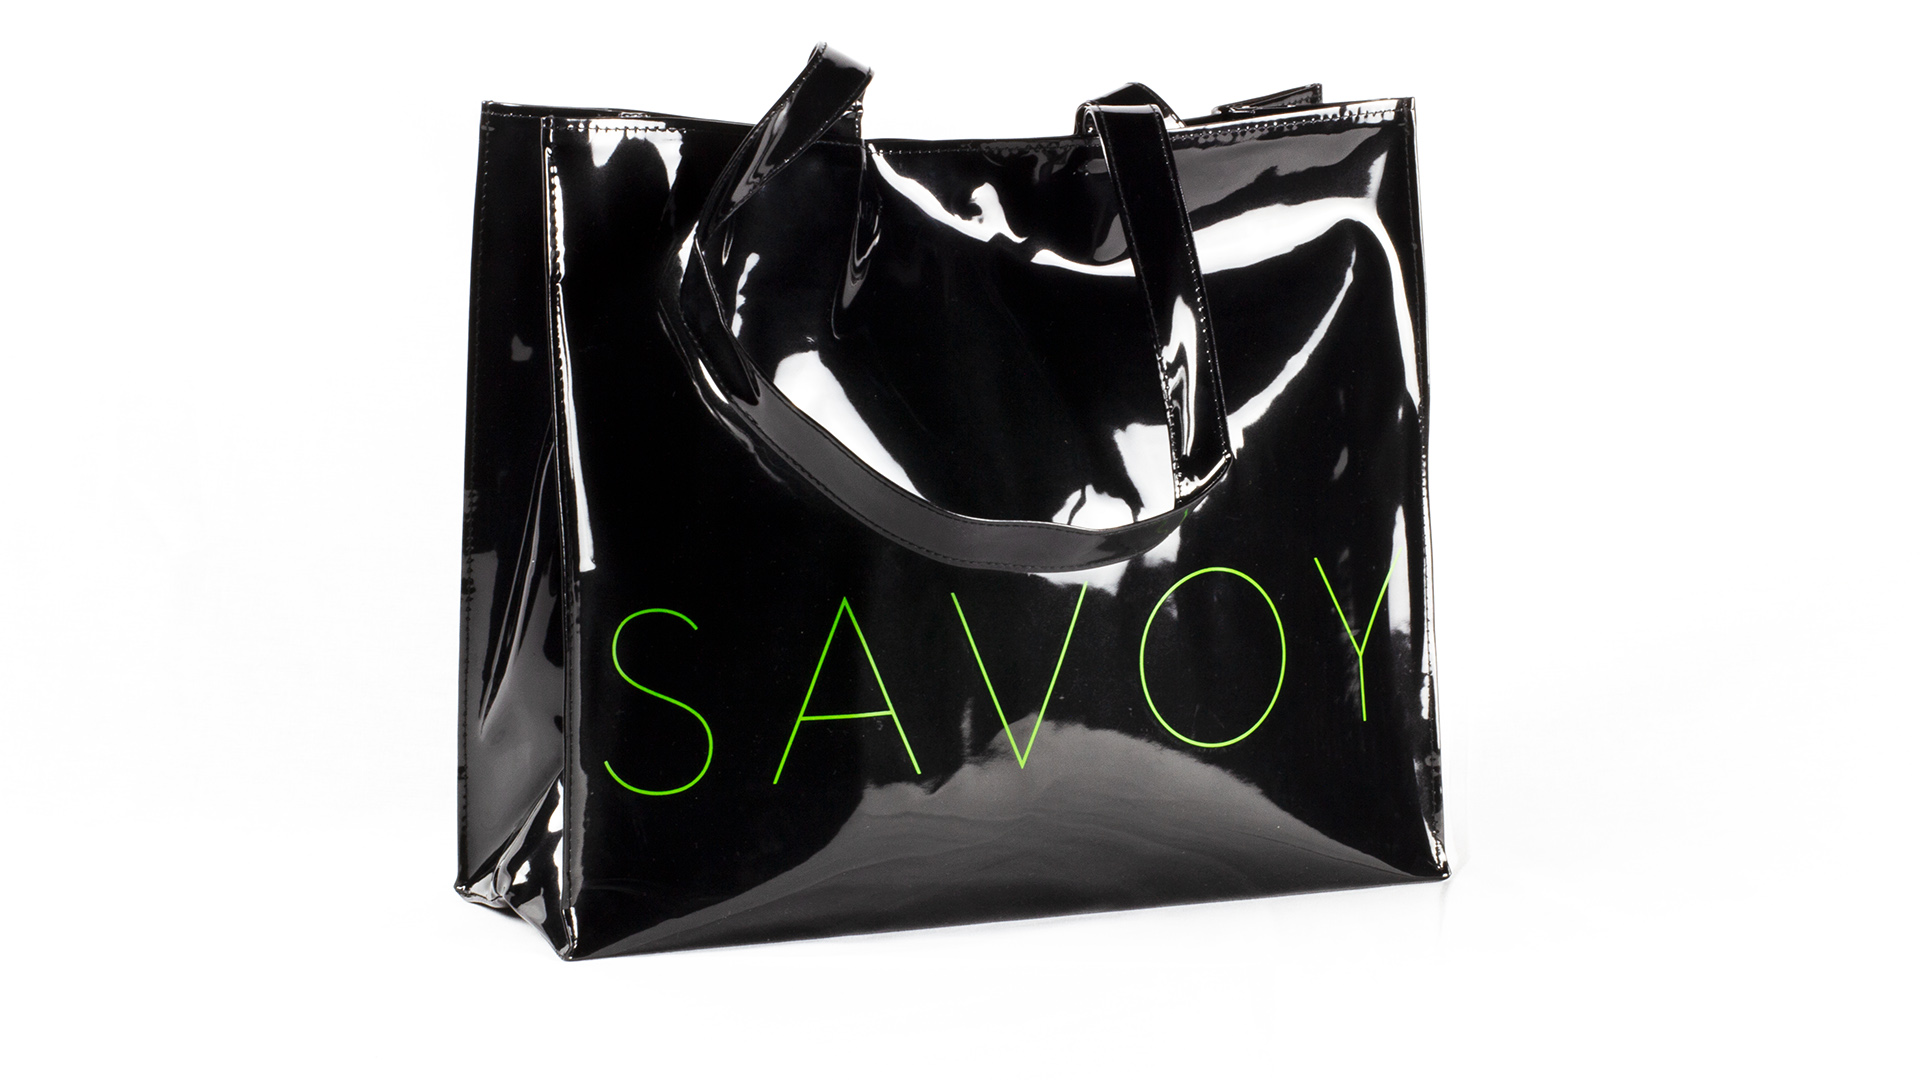 SALE - The Savoy Tote Bag (Large)